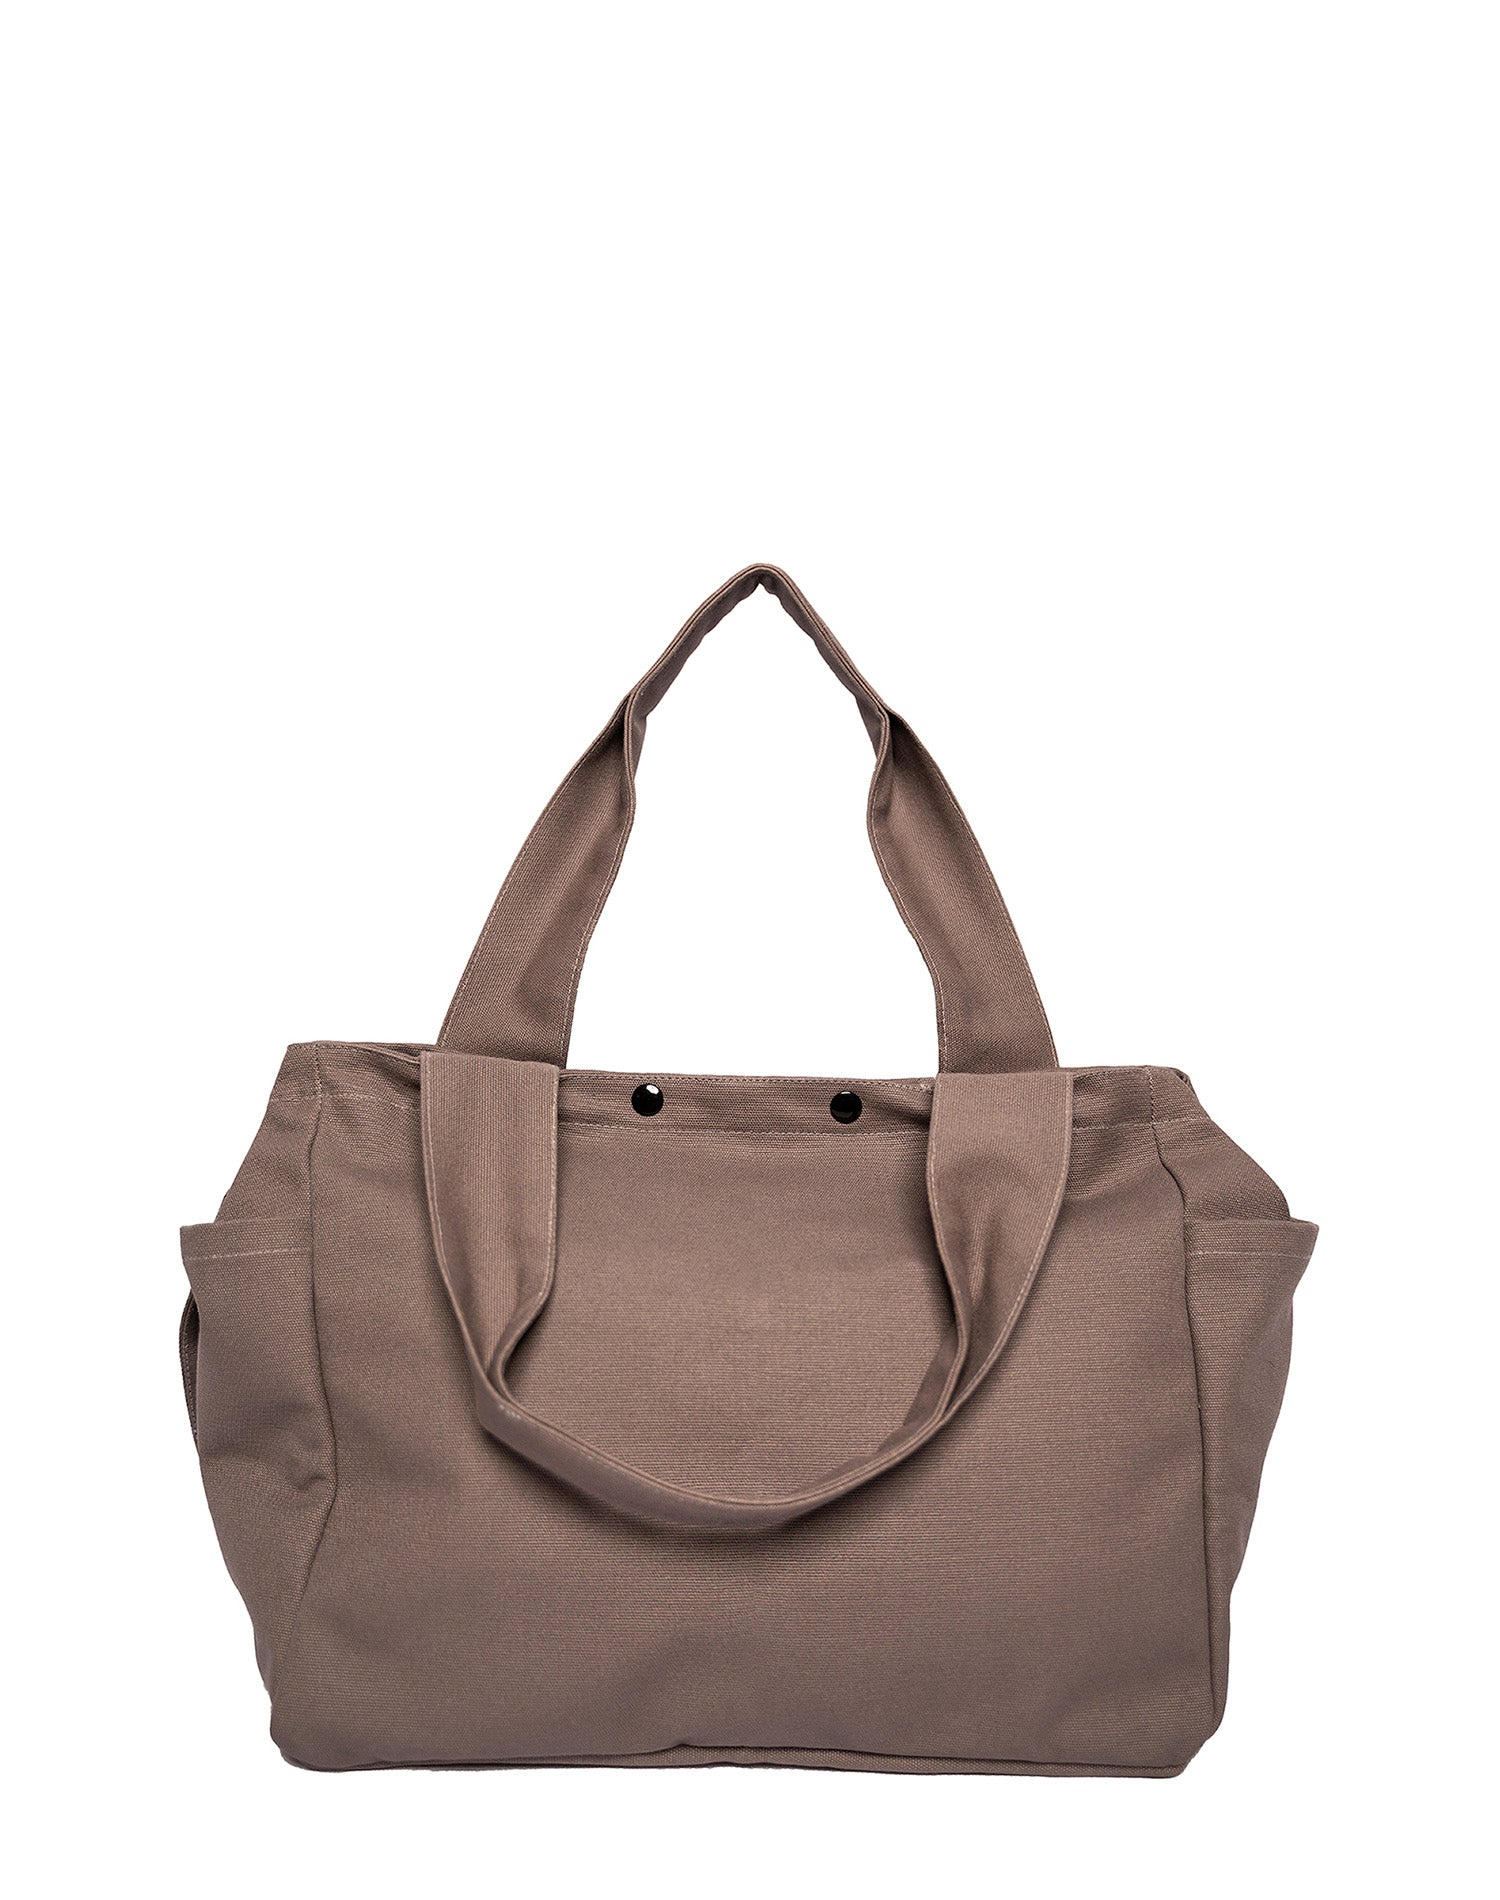 Dark Grey Square Canvas Tote Bag.深灰色方形帆布側背袋